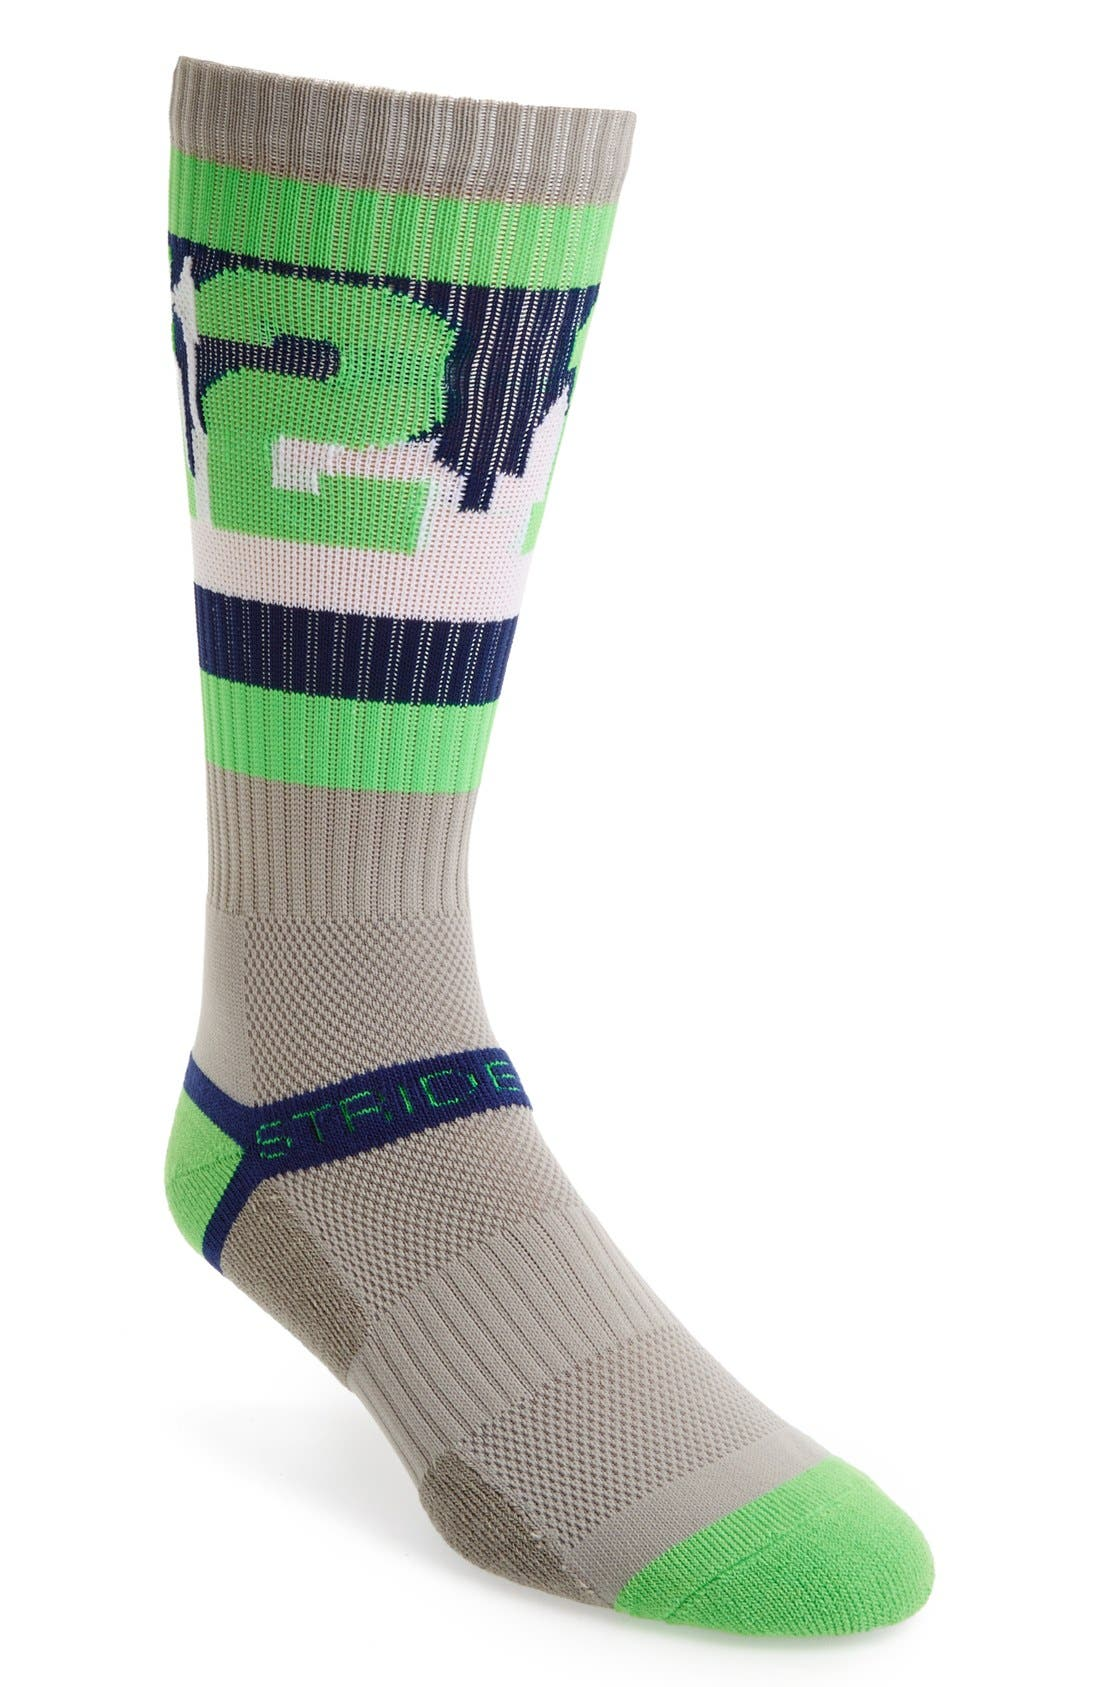 Alternate Image 1 Selected - STRIDELINE 'Seattle 12th Man' Socks